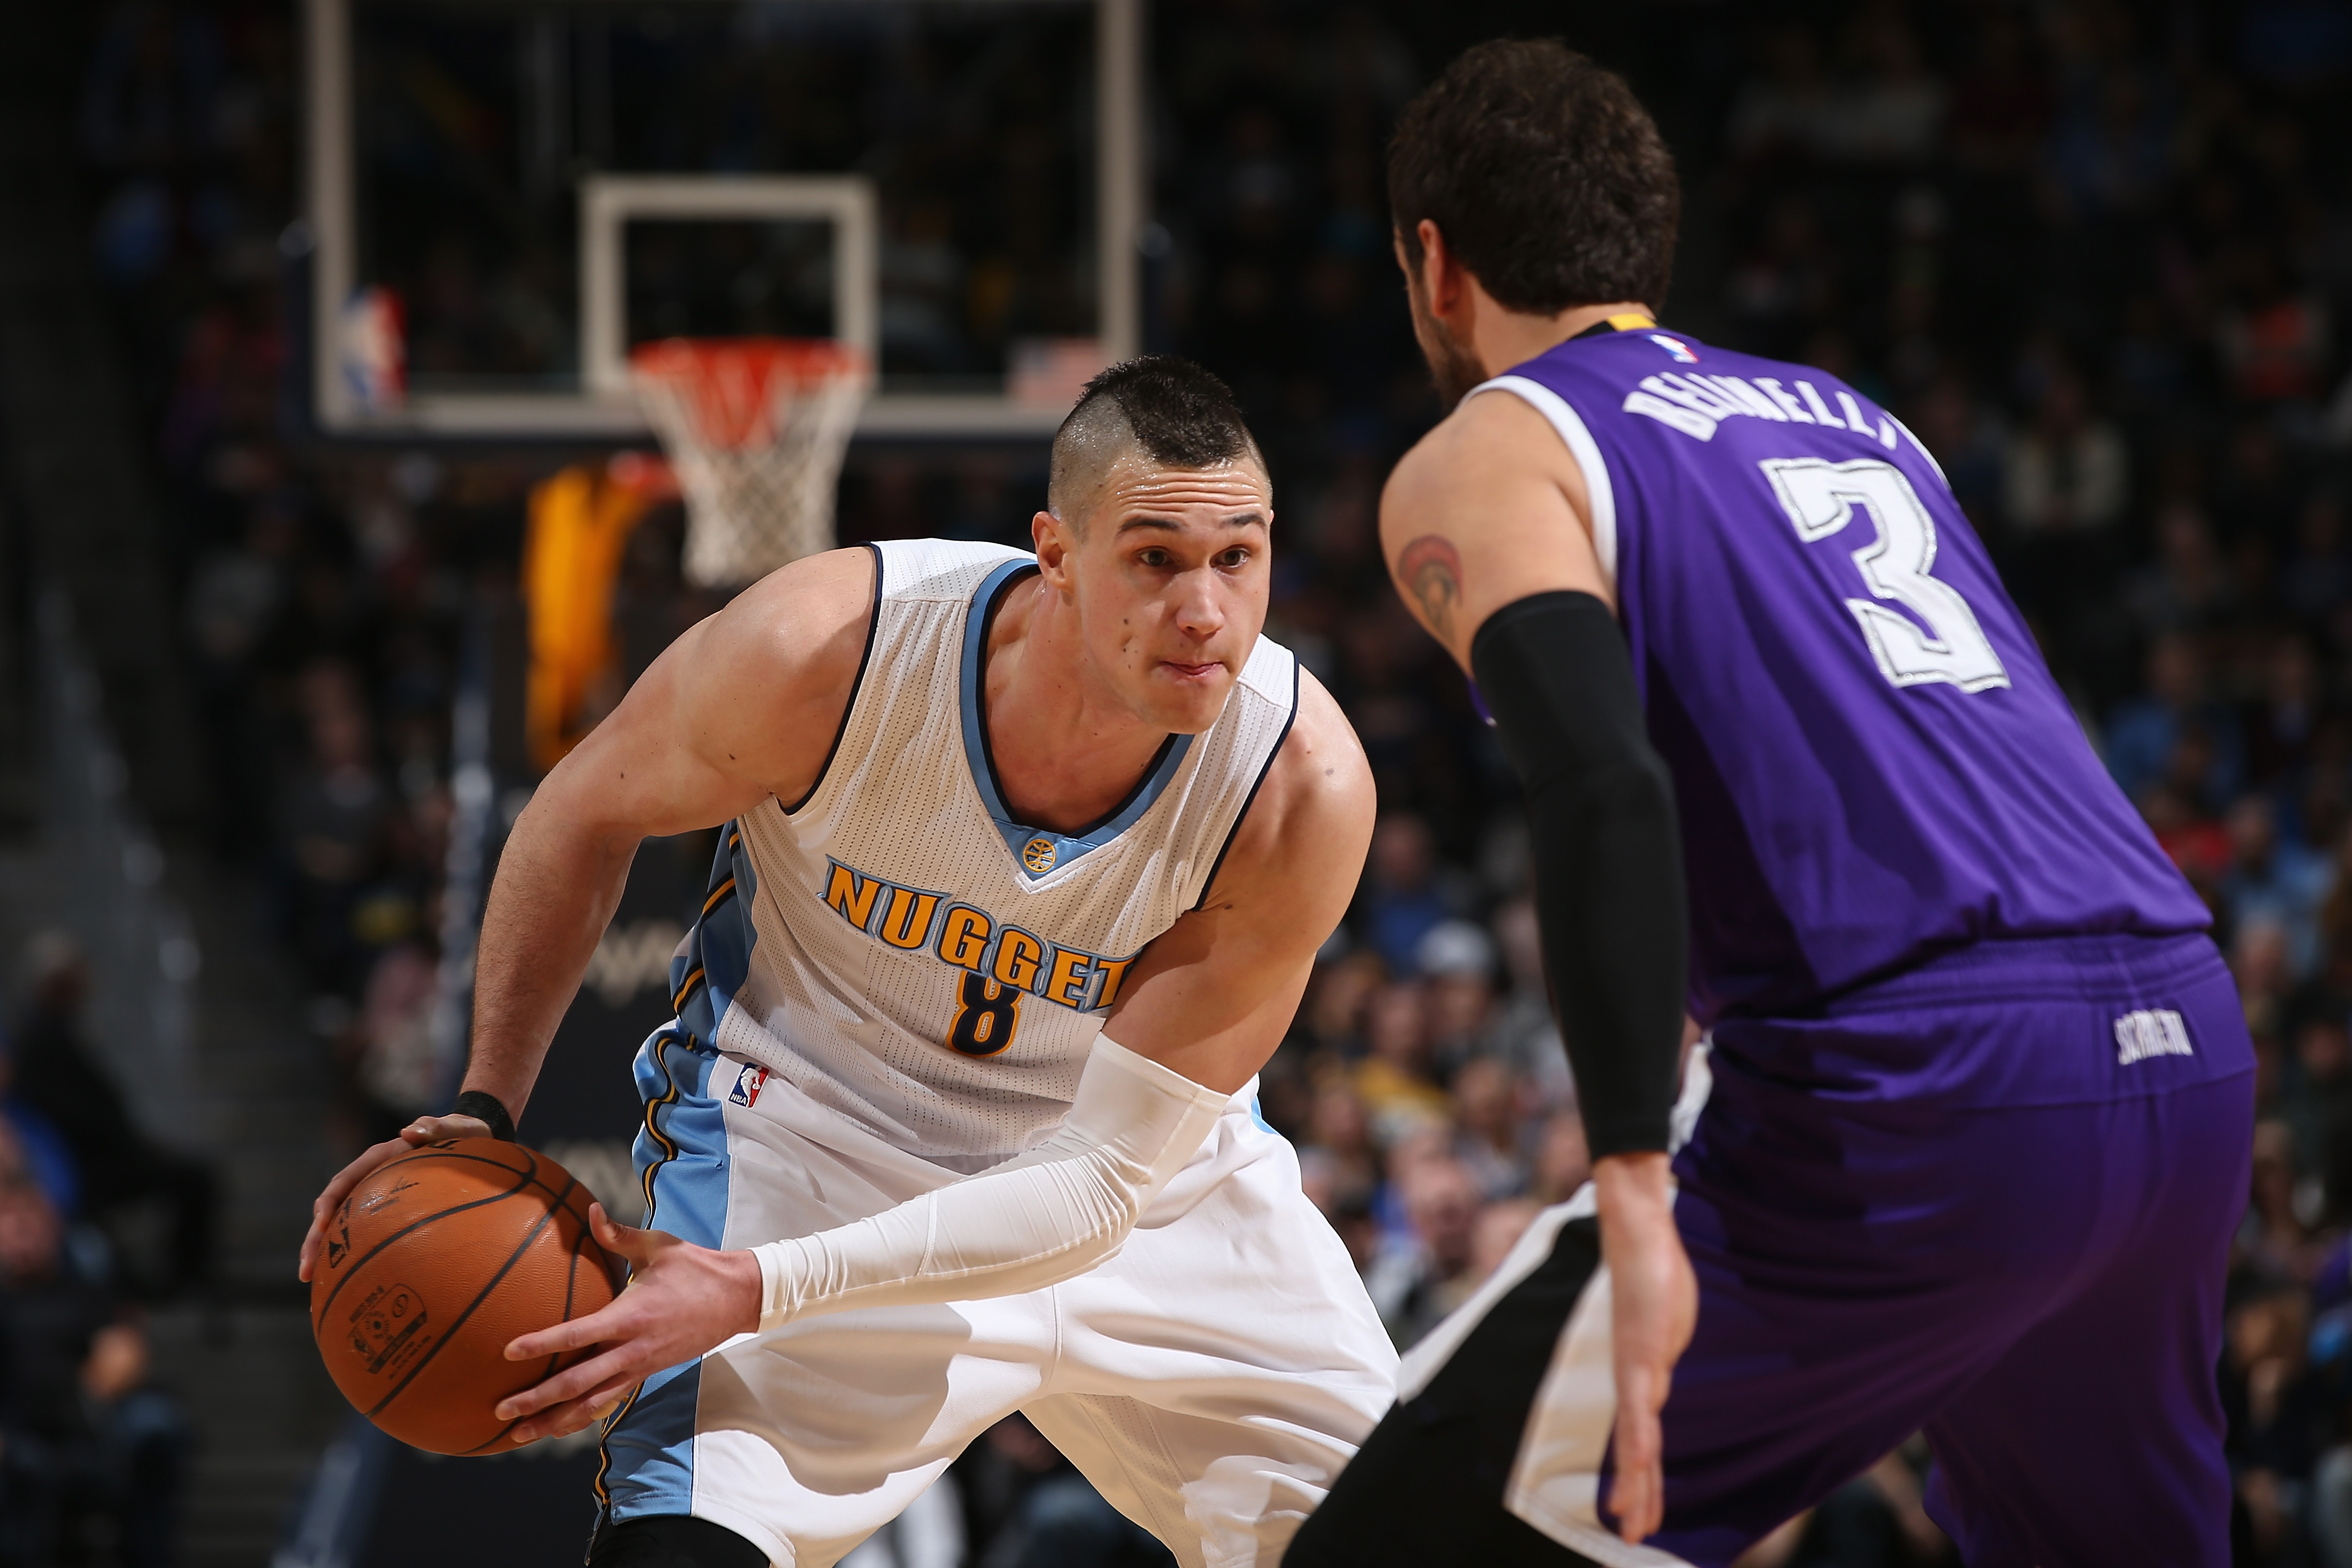 DENVER, CO - FEBRUARY 23: Danilo Gallinari #8 of the Denver Nuggets controls the ball against Marco Belinelli #3 of the Sacramento Kings at Pepsi Center on February 23, 2016 in Denver, Colorado. The Kings defeated the Nuggets 114-110. NOTE TO USER: User expressly acknowledges and agrees that, by downloading and or using this photograph, User is consenting to the terms and conditions of the Getty Images License Agreement. (Photo by Doug Pensinger/Getty Images)